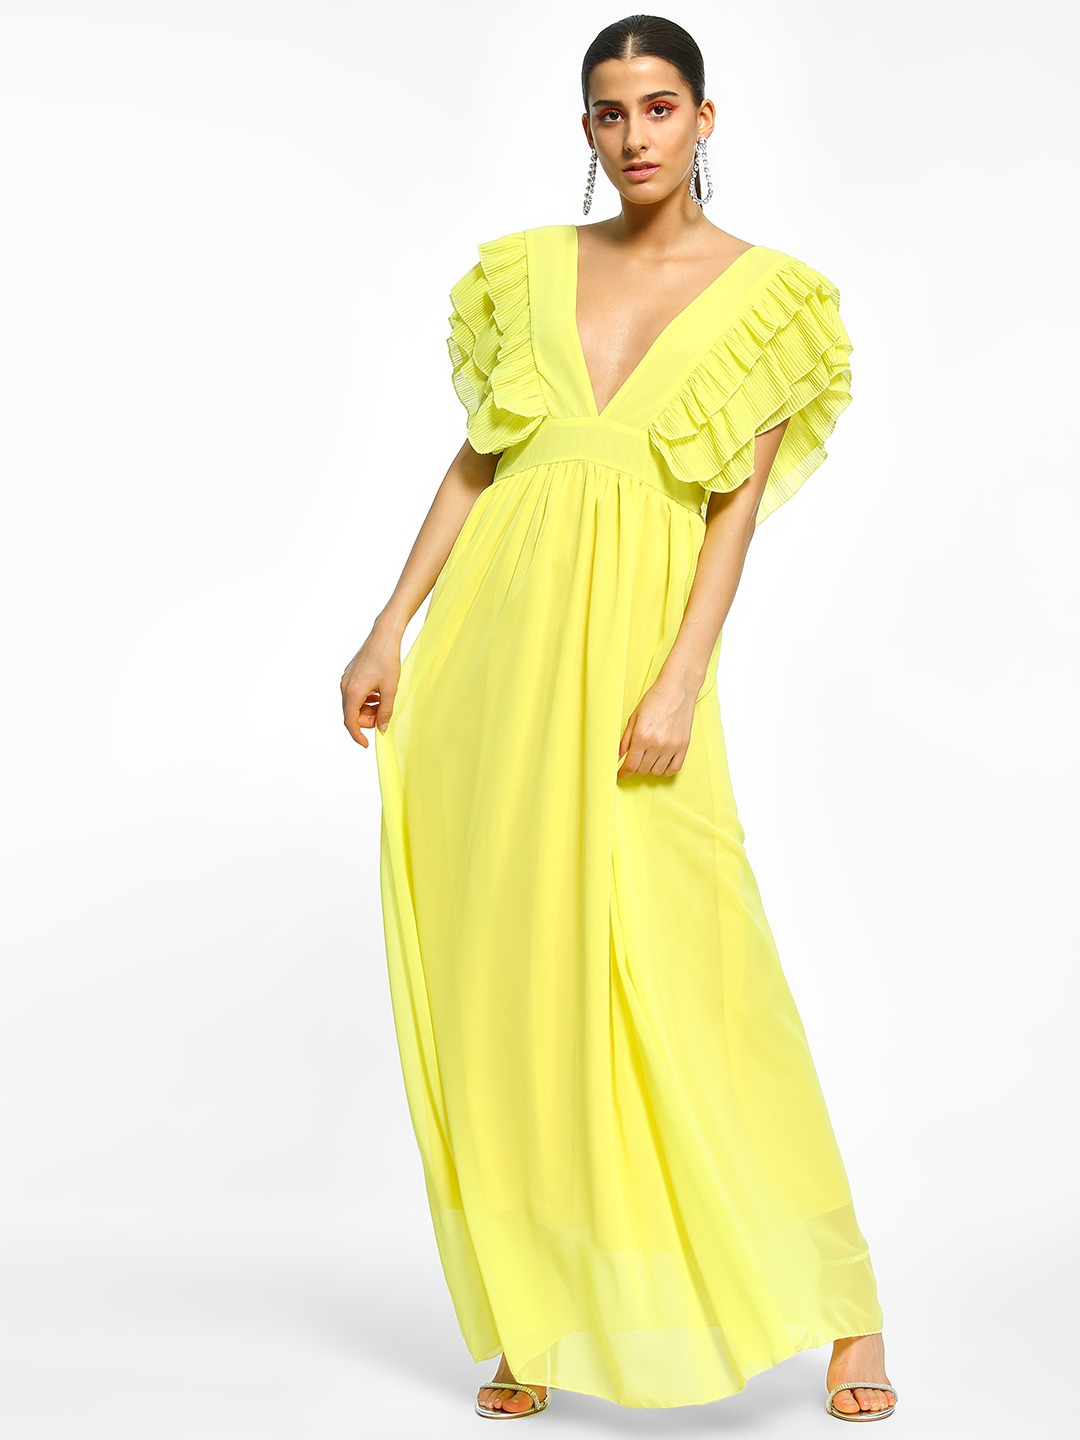 Flam Mode Yellow Ruffled Plunge Neck Maxi Dress 1